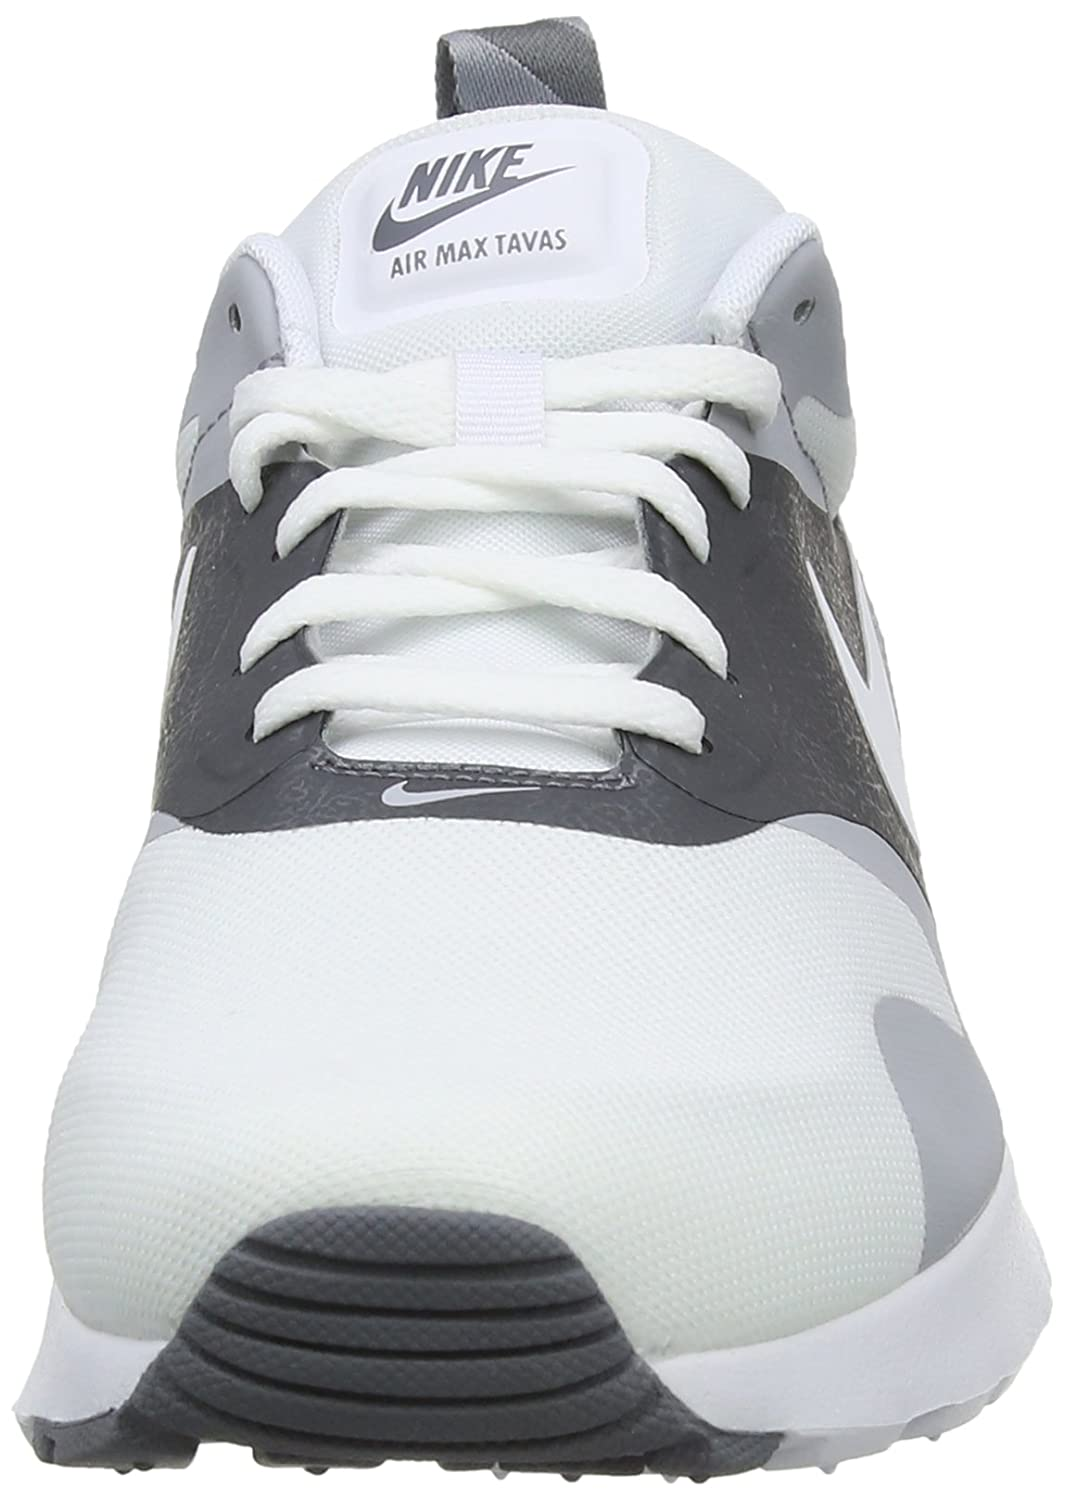 best website 8f3ad a1d94 Nike Air Max Tavas, Men s Trainers  Amazon.co.uk  Shoes   Bags